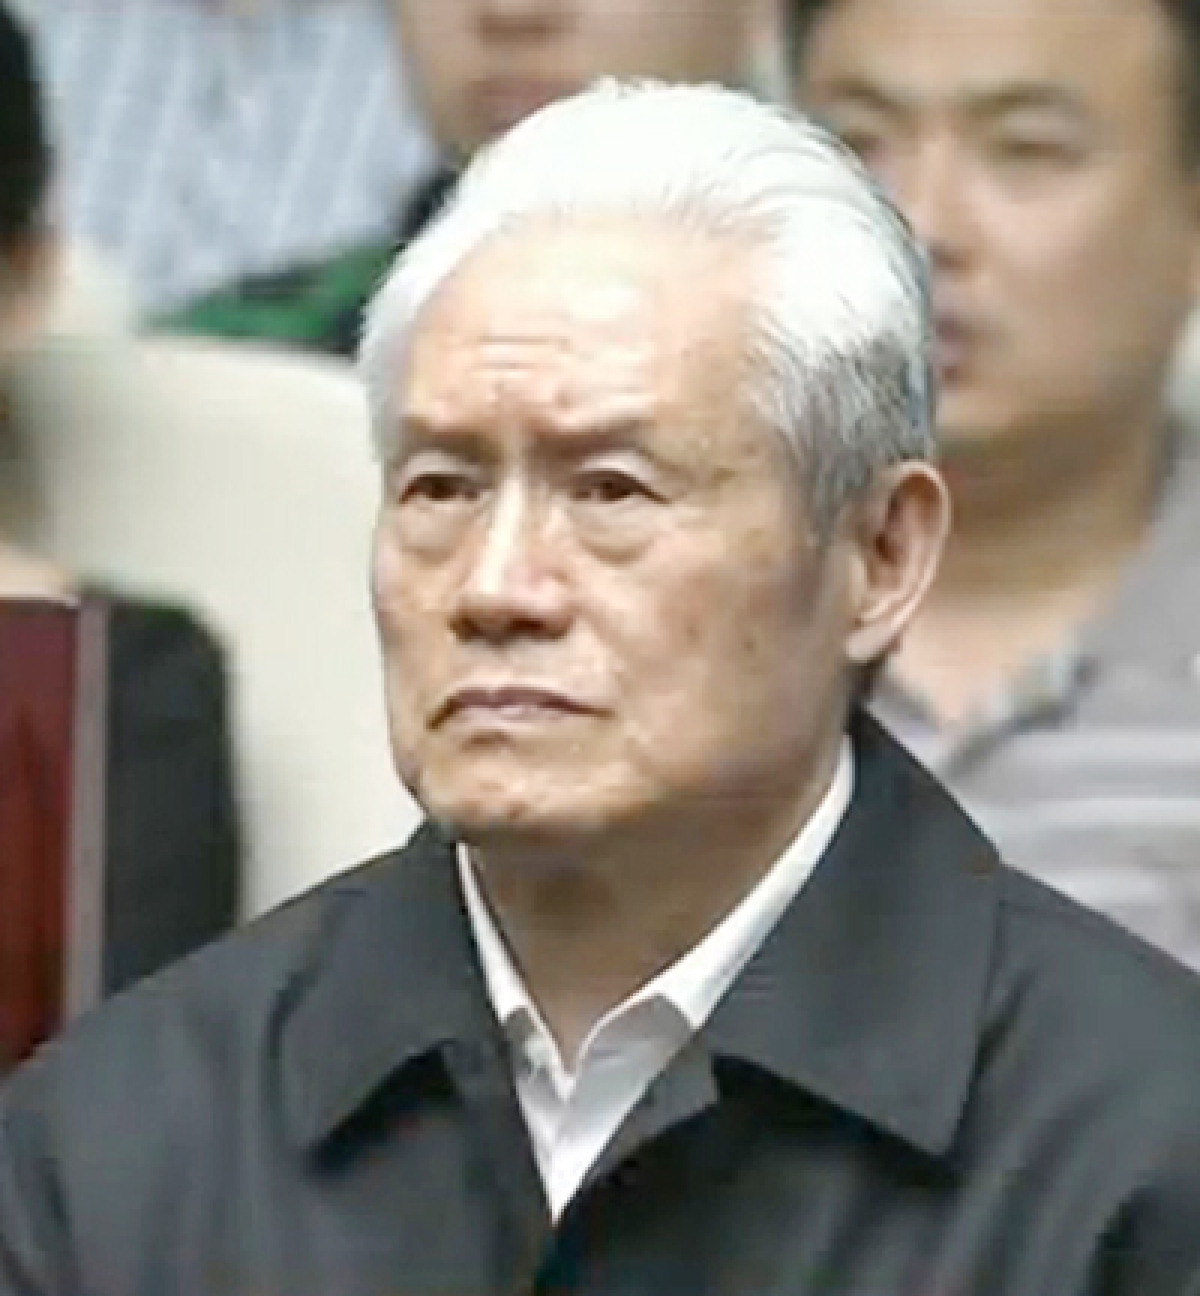 "This screen grab taken from CCTV footage shows former Chinese security chief Zhou Yongkang standing on trial at the Intermediate People's Court in Tianjin on June 11, 2015. Former Chinese security chief Zhou Yongkang, the highest ranking ex-official to be investigated for corruption in decades, was sentenced on June 11 to life in prison at a secret trial, state-media said. CHINA OUT AFP PHOTO / CCTV ----EDITORS NOTE---- RESTRICTED TO EDITORIAL USE - MANDATORY CREDIT ""AFP PHOTO / CCTV - NO MARKETING NO ADVERTISING CAMPAIGNS - DISTRIBUTED AS A SERVICE TO CLIENTS"